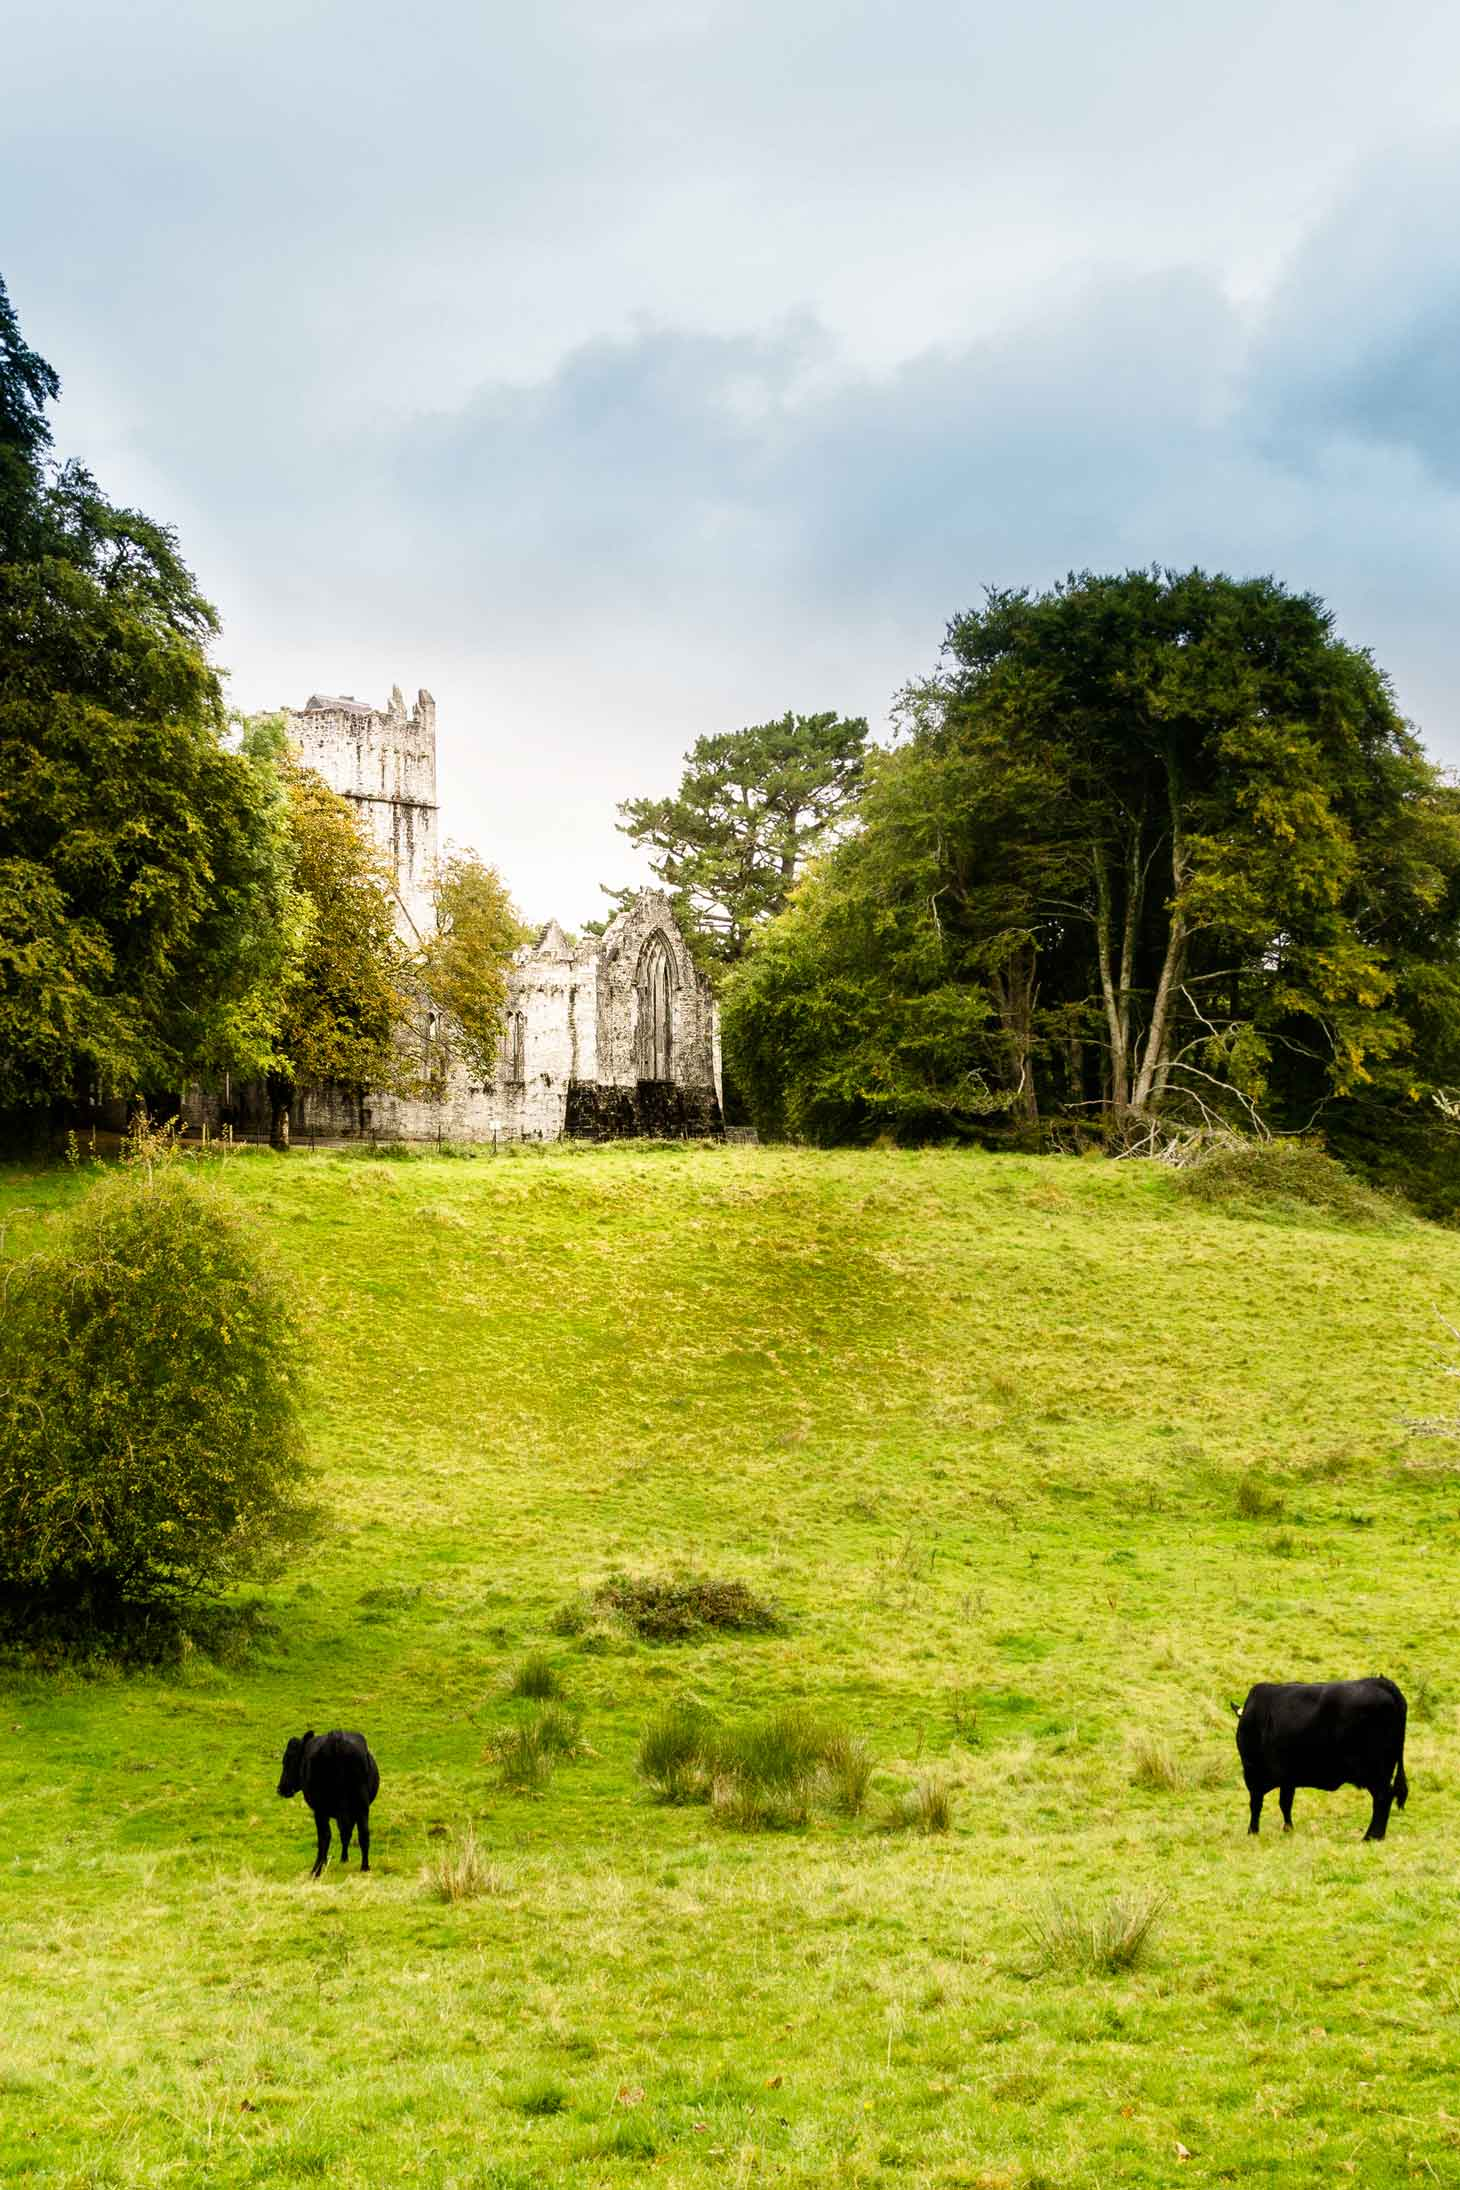 Kerry cows outside Muckross Abbey while hiking in Killarney National Park